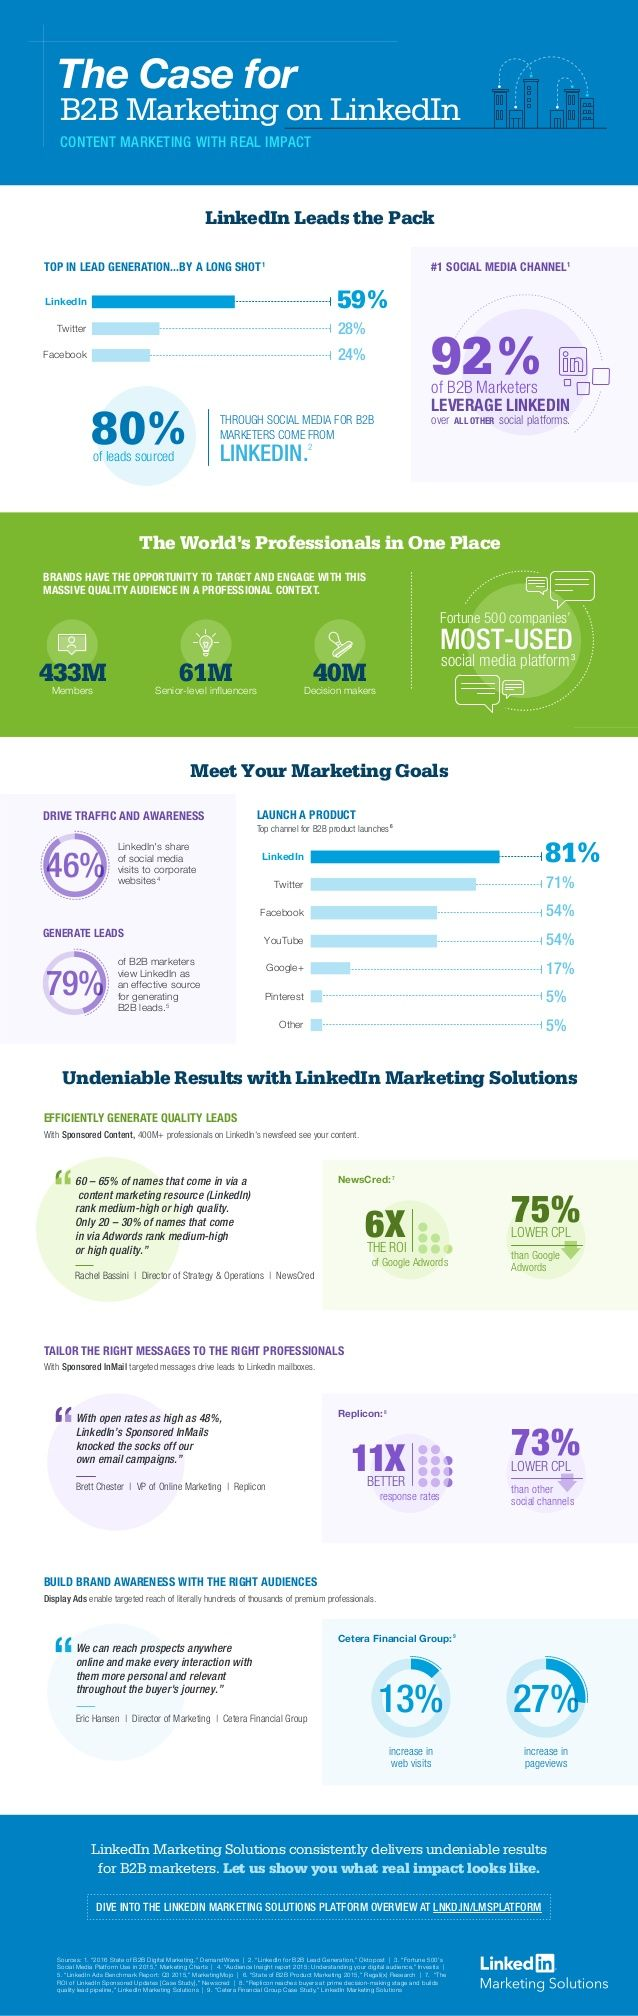 why-b2b-marketers-net-undeniable-results-on-linkedin-1-638